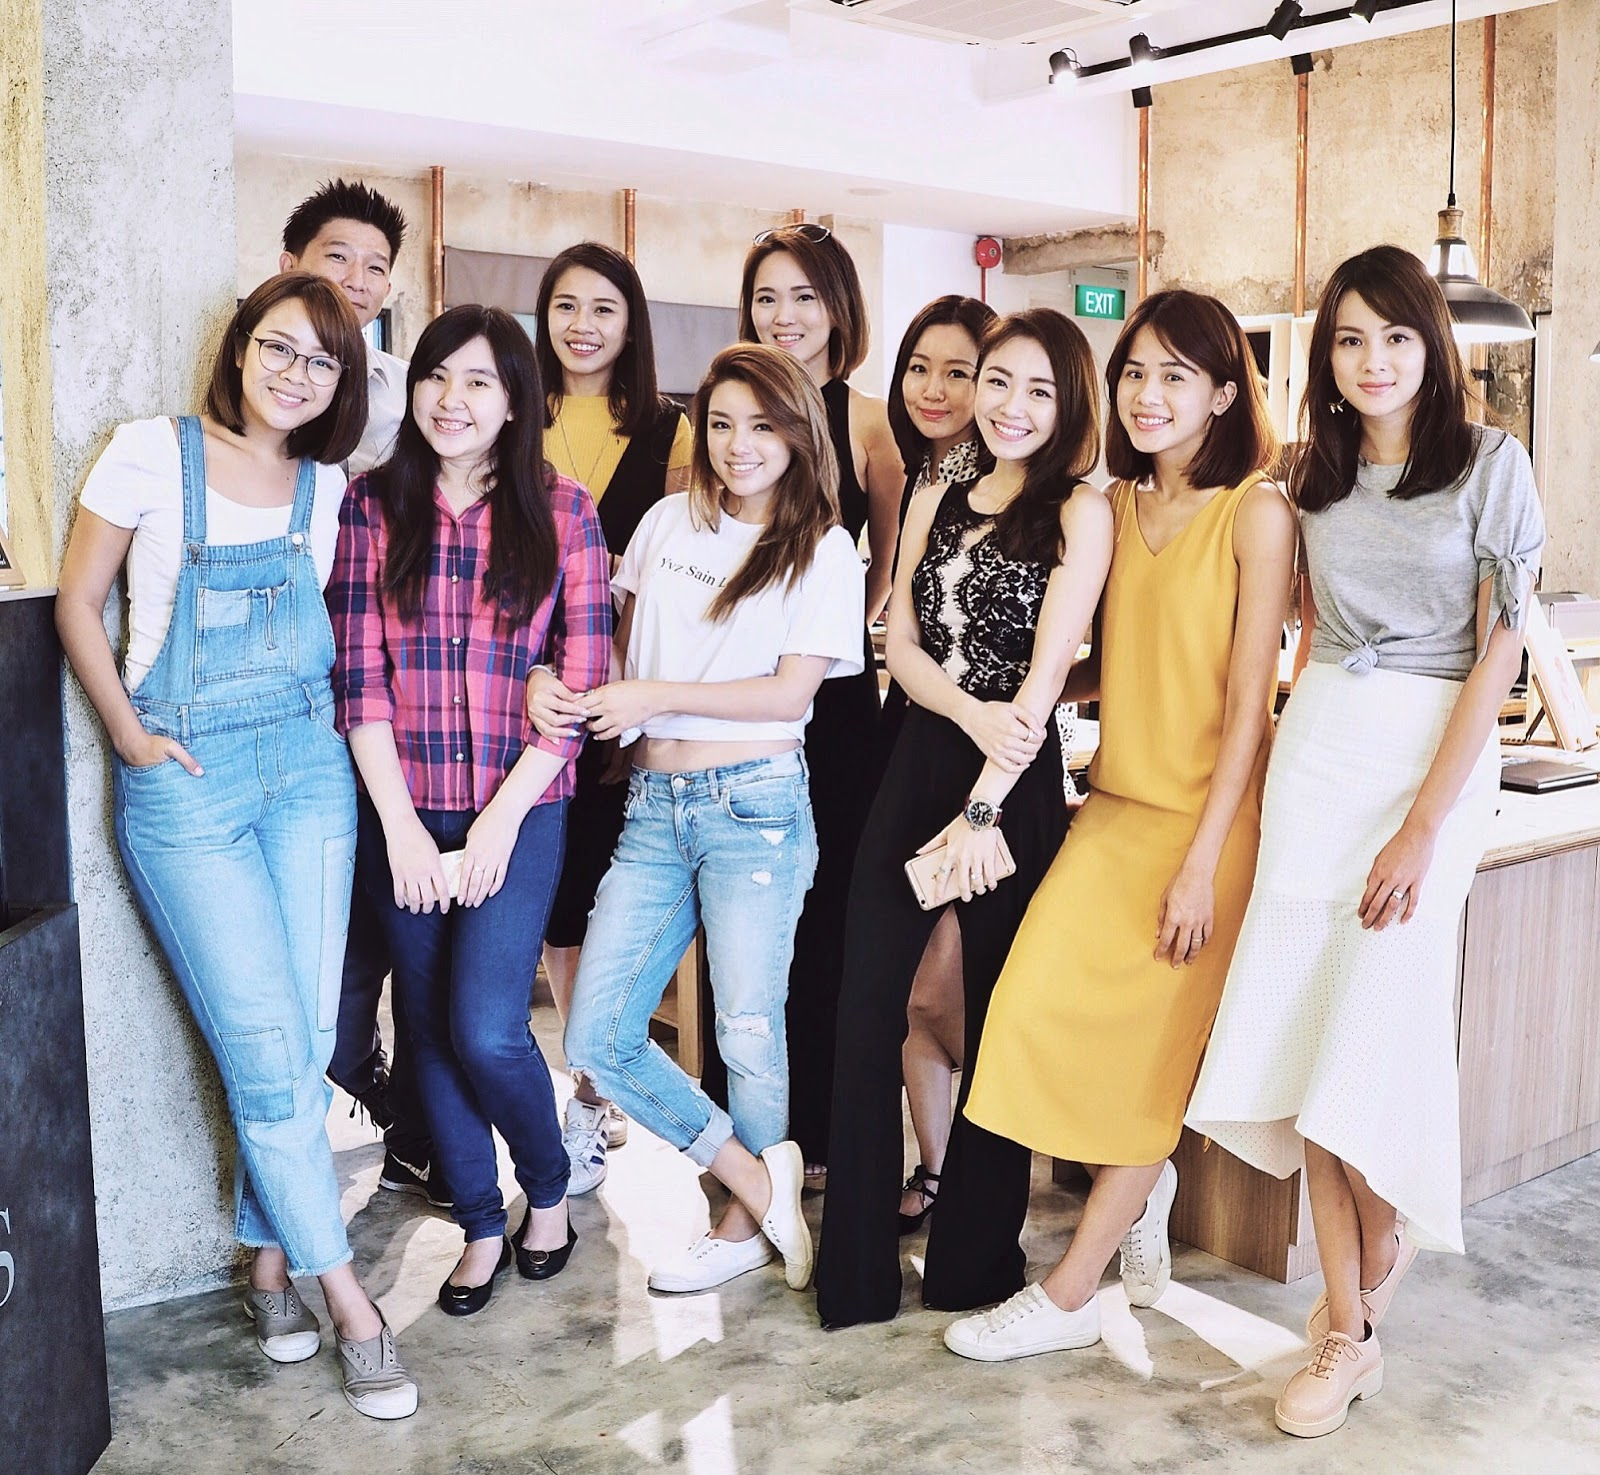 Celebrity Bloggers and their friends: Yina, Evonne, Tricia, Min, Reenie, Jess, Ying and Jeneen